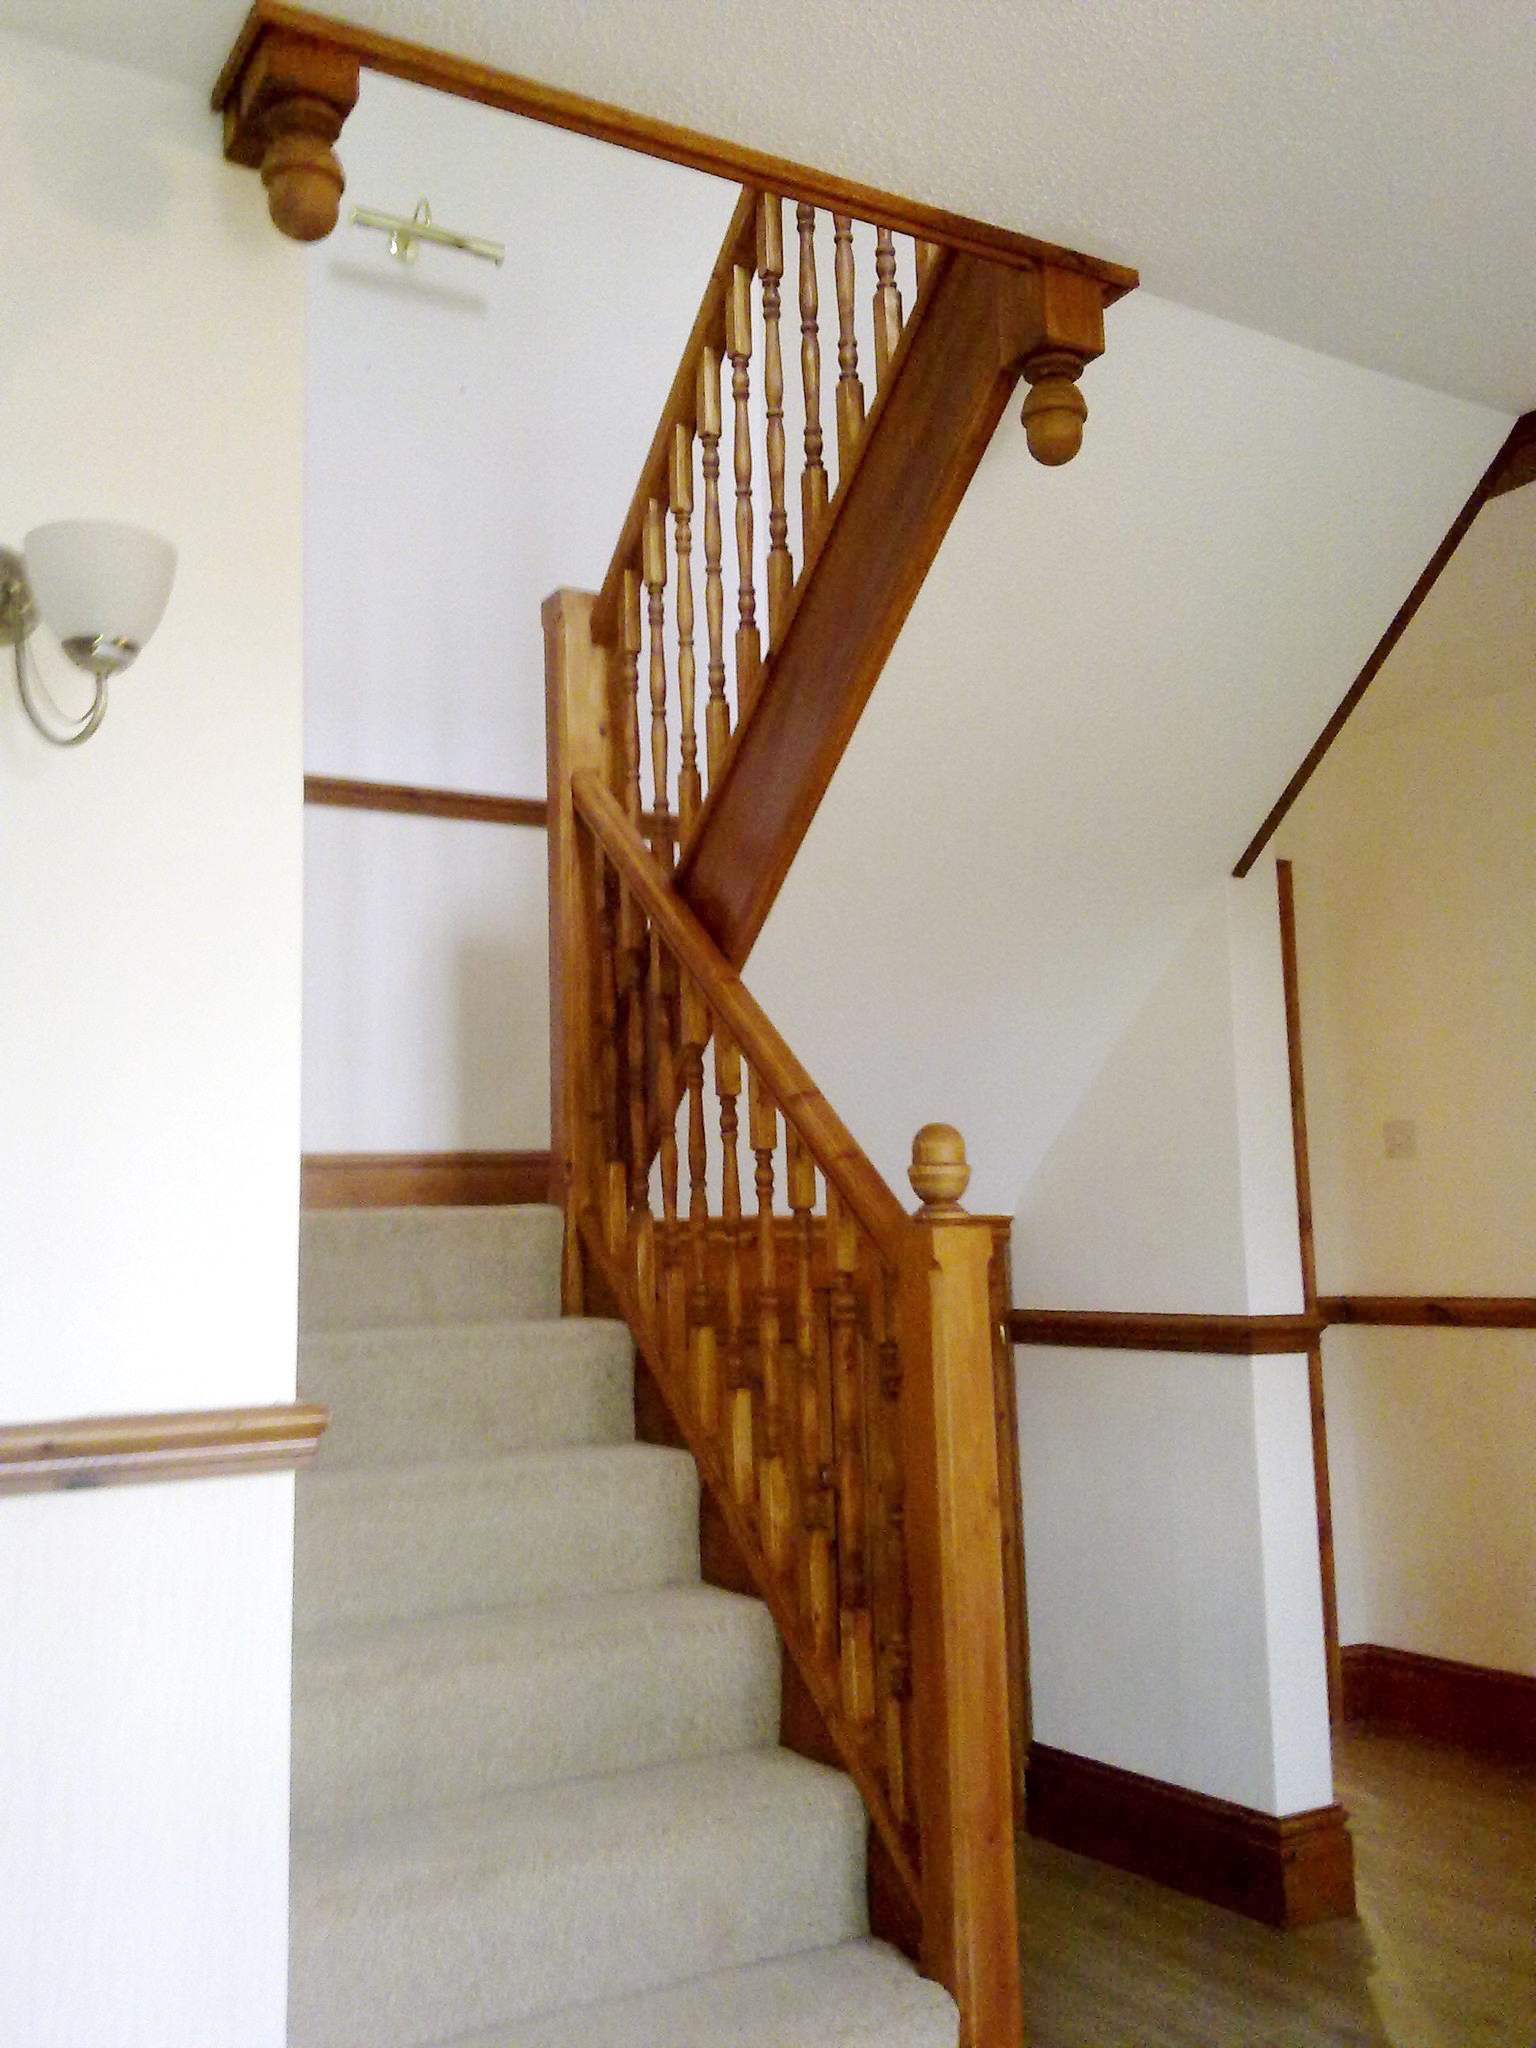 Staircase - All built and installed on site